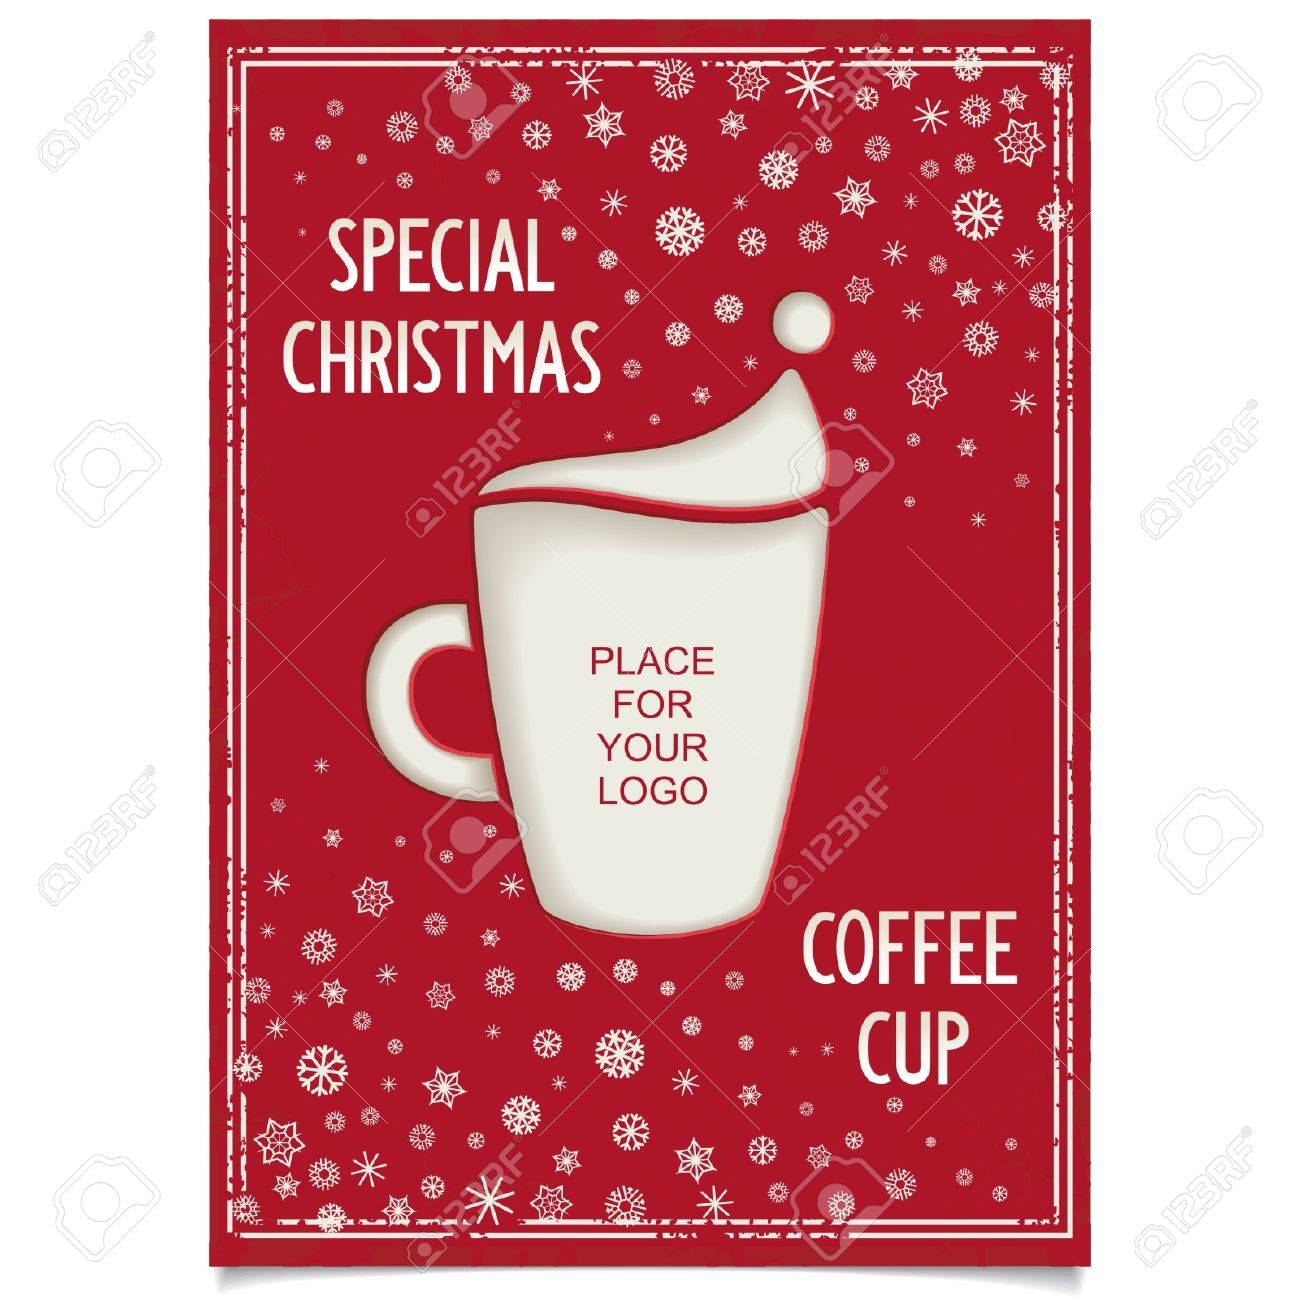 Christmas Restaurant Poster.Fun Vintage Christmas Poster Design For Restaurant And Cafe With